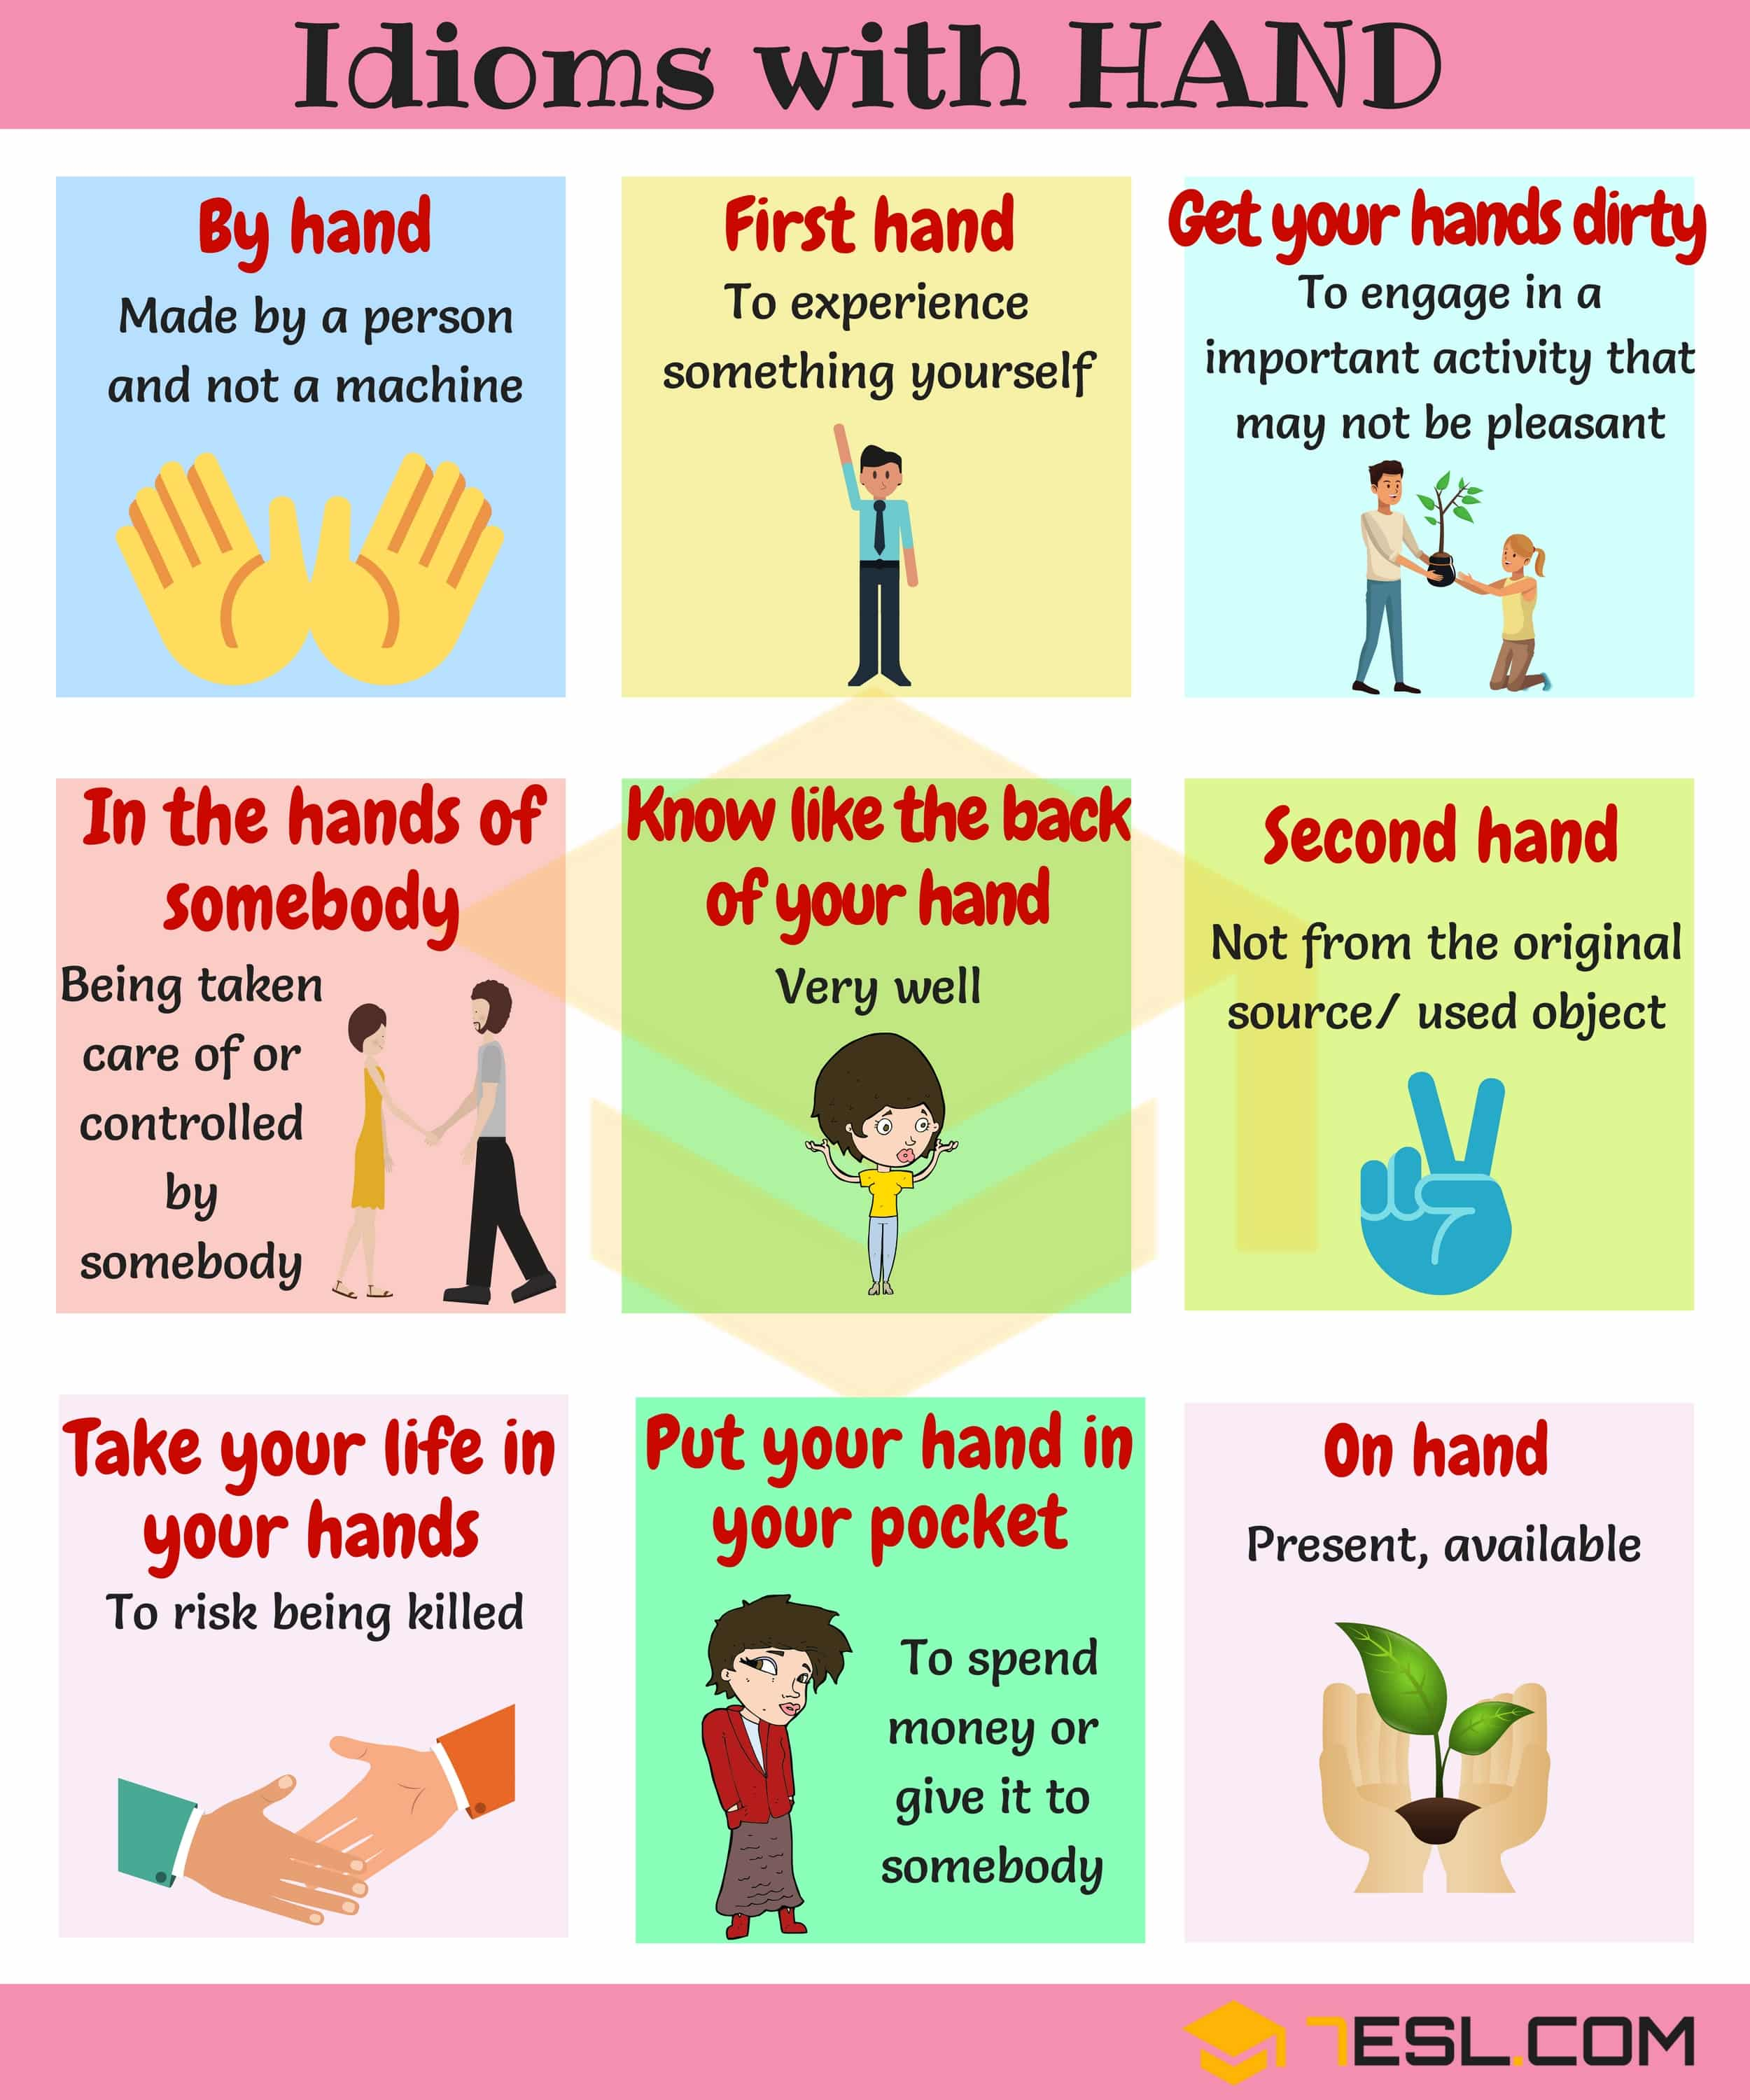 HAND Idioms: 25+ Useful Idioms & Sayings about Hands